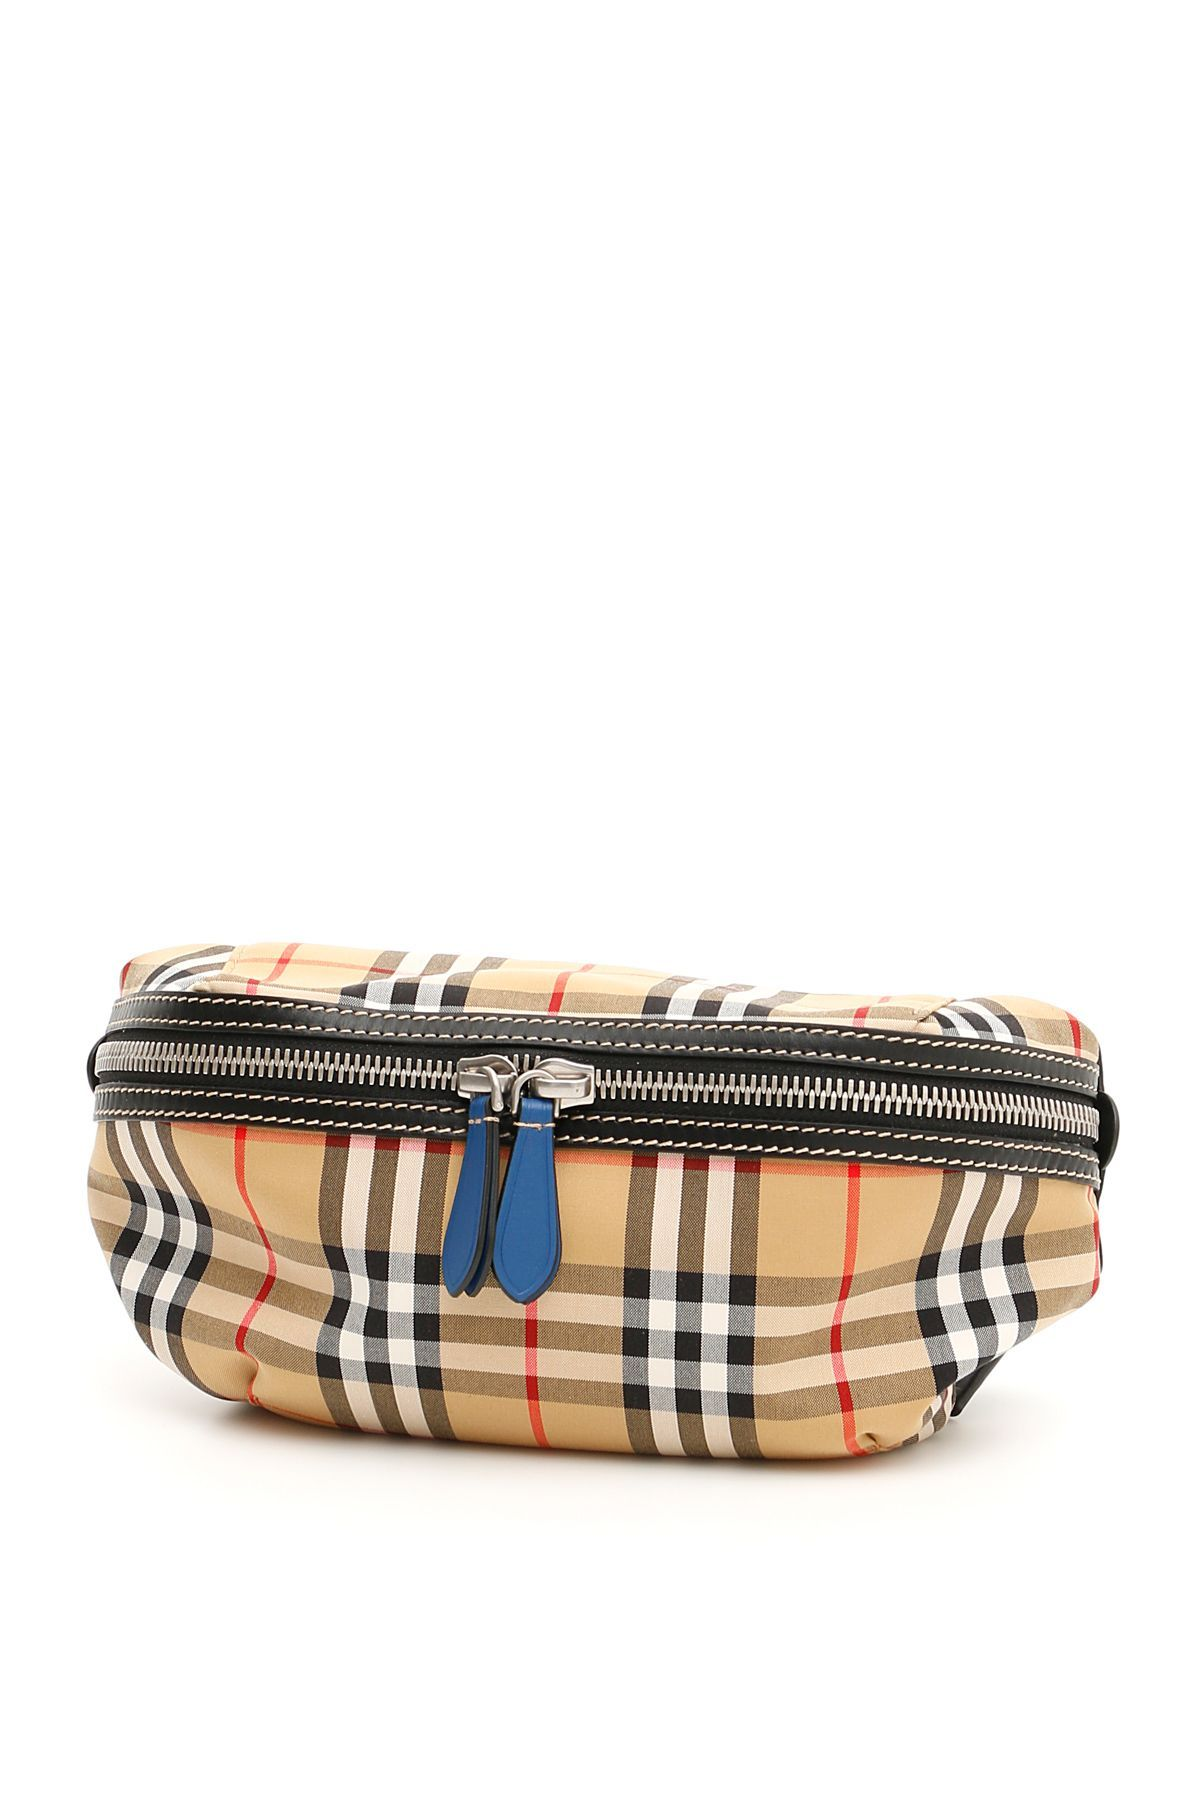 1885dc946c53 BURBERRY VINTAGE CHECK SONNY BELTBAG.  burberry  bags  leather  lining